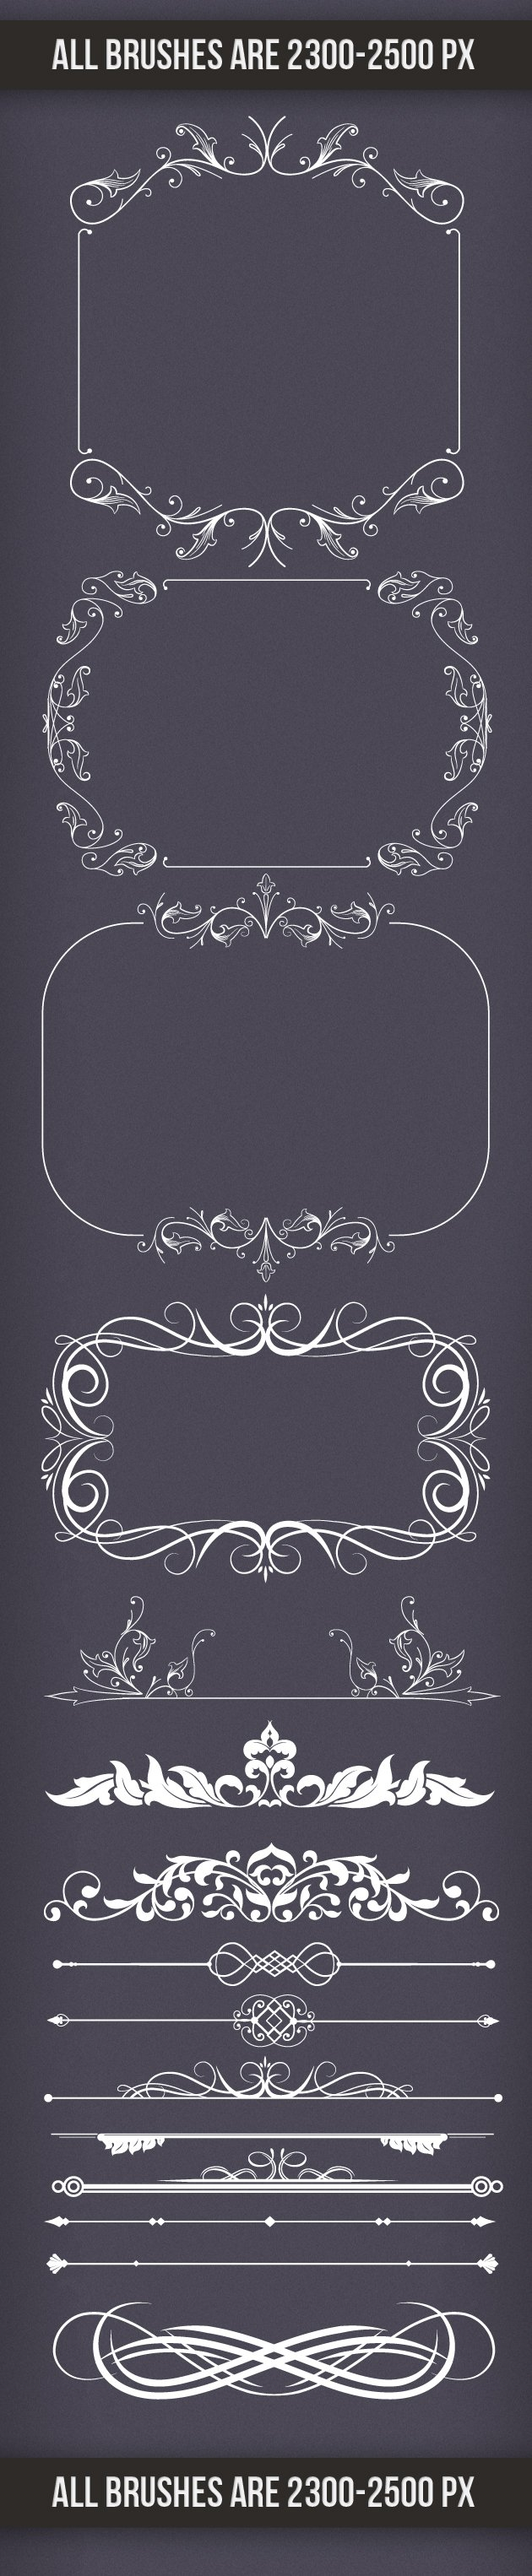 Decoration-Frames-and-Dividers-PS-Brushes 2